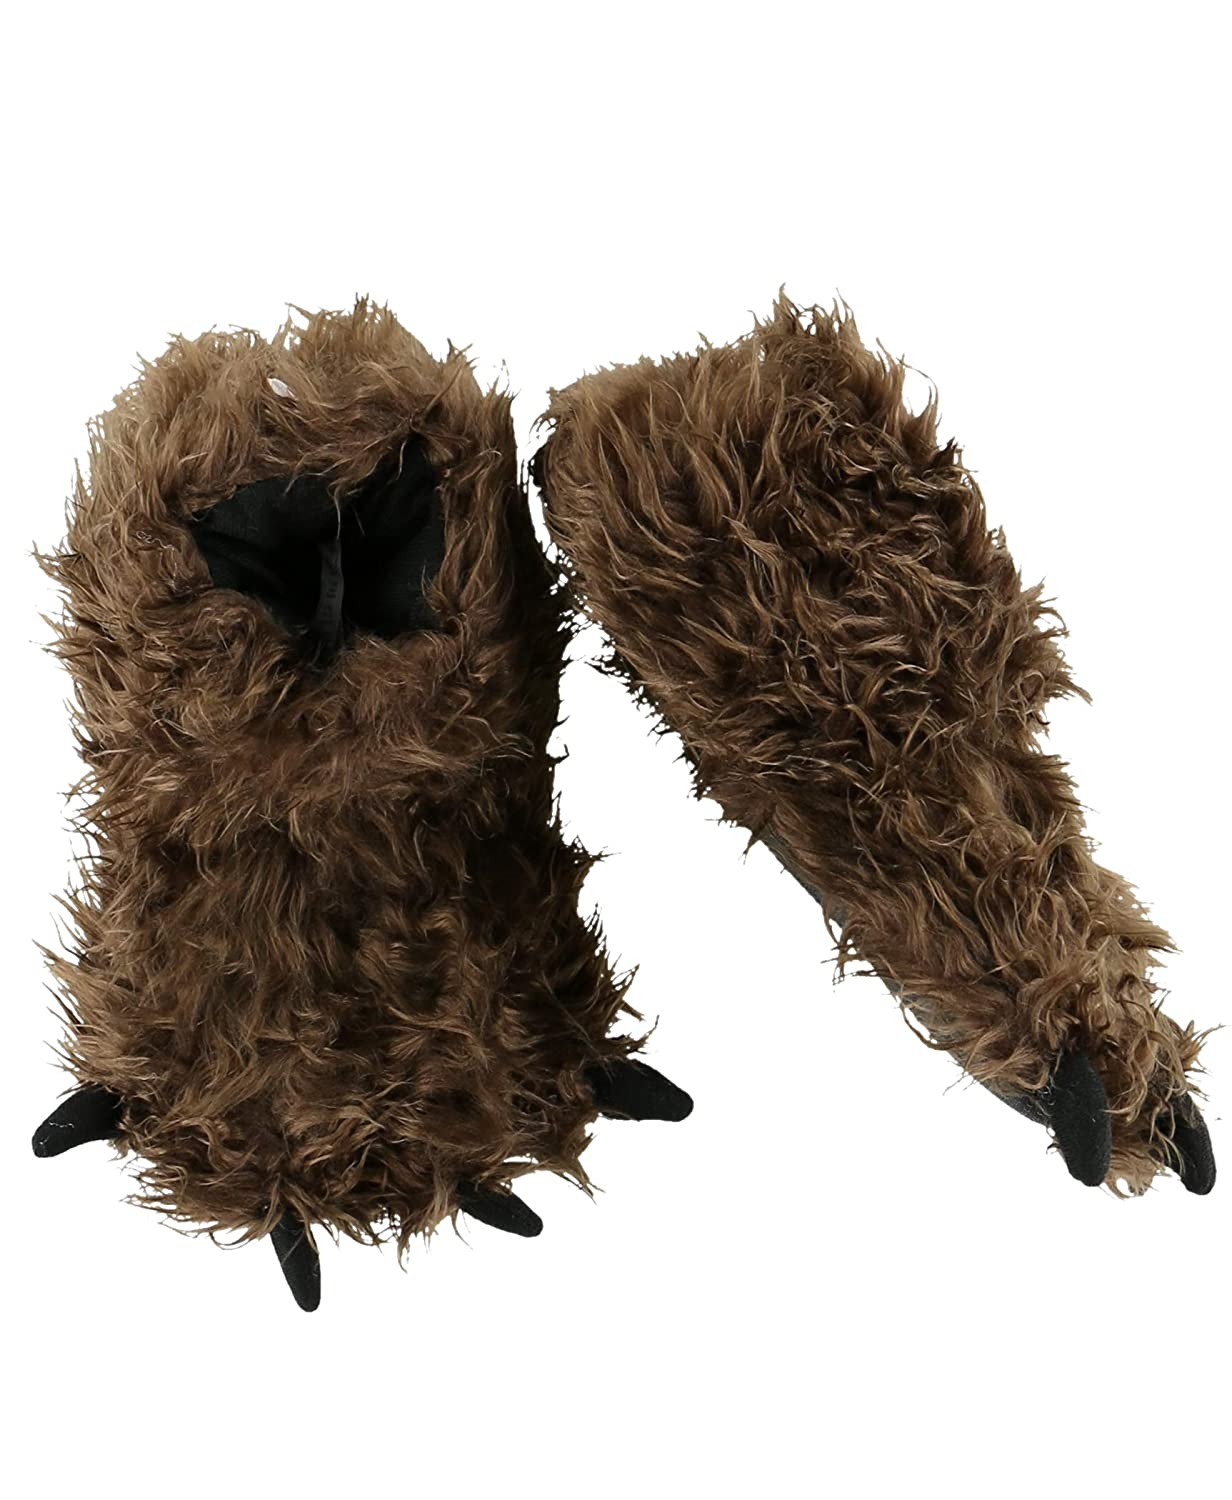 beea553d7c89b Animal Paw Slippers for Kids and Adults by LazyOne